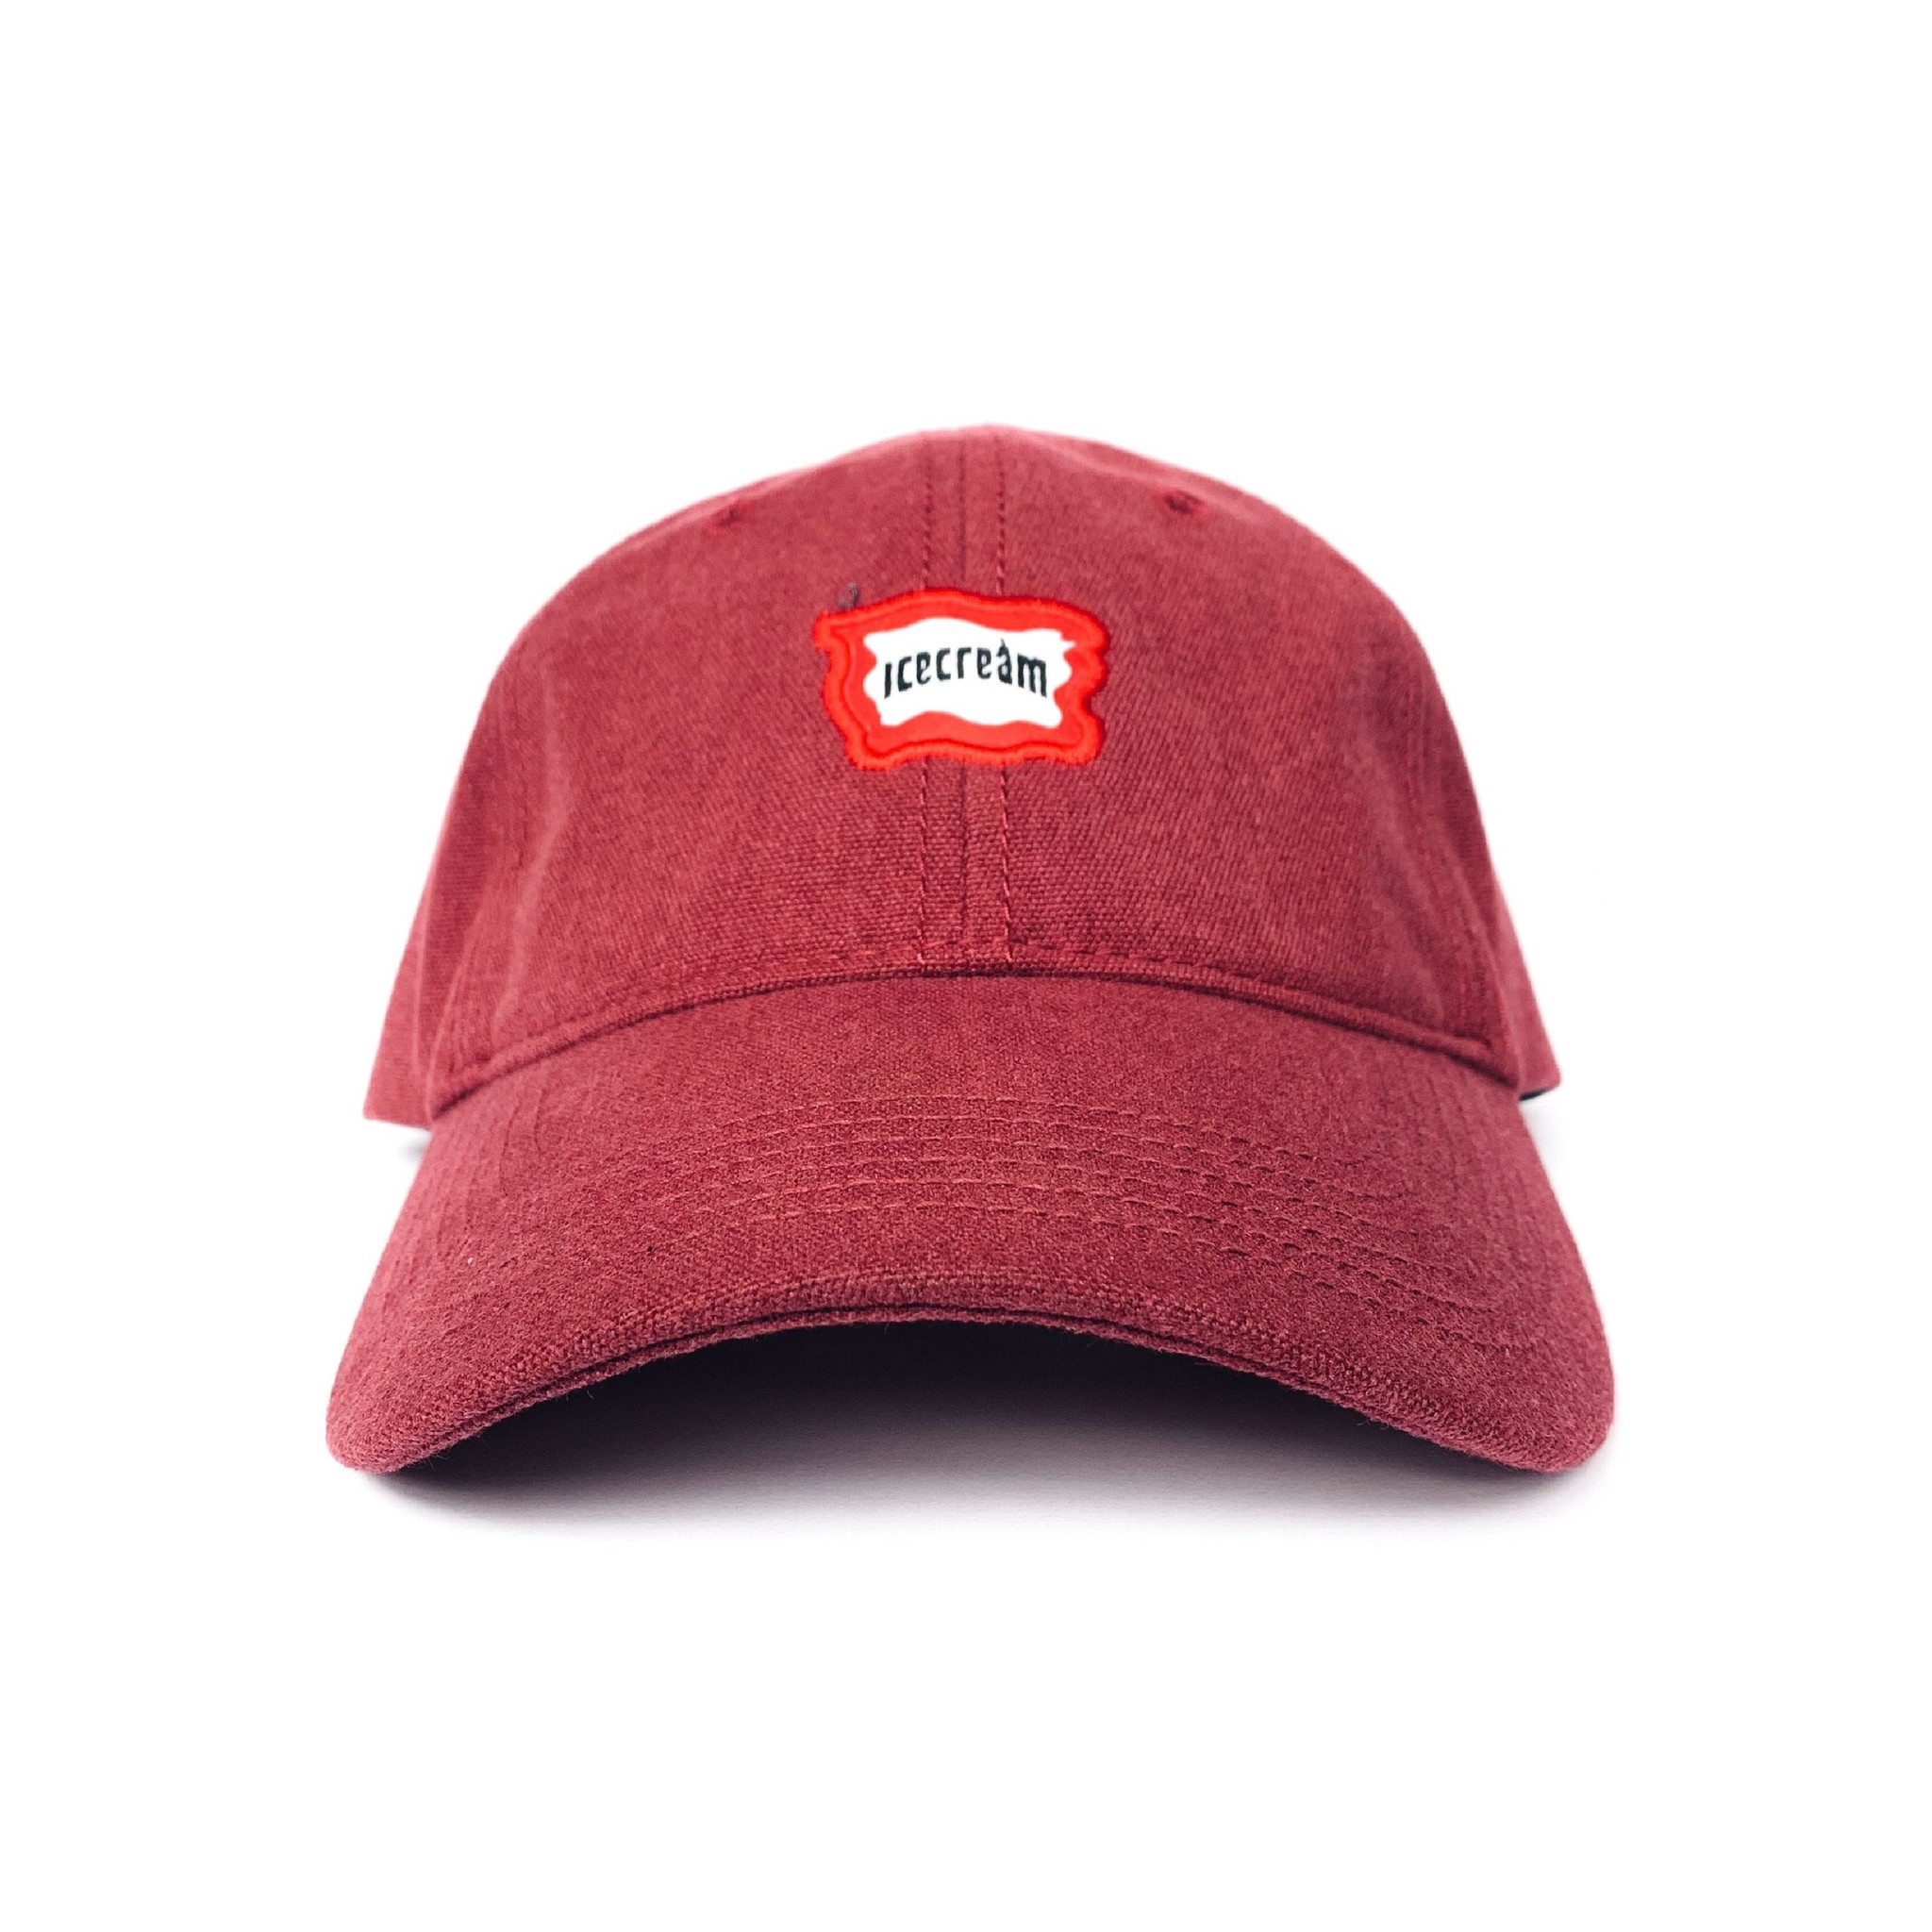 Icecream Icecream Flag Cap Maroon